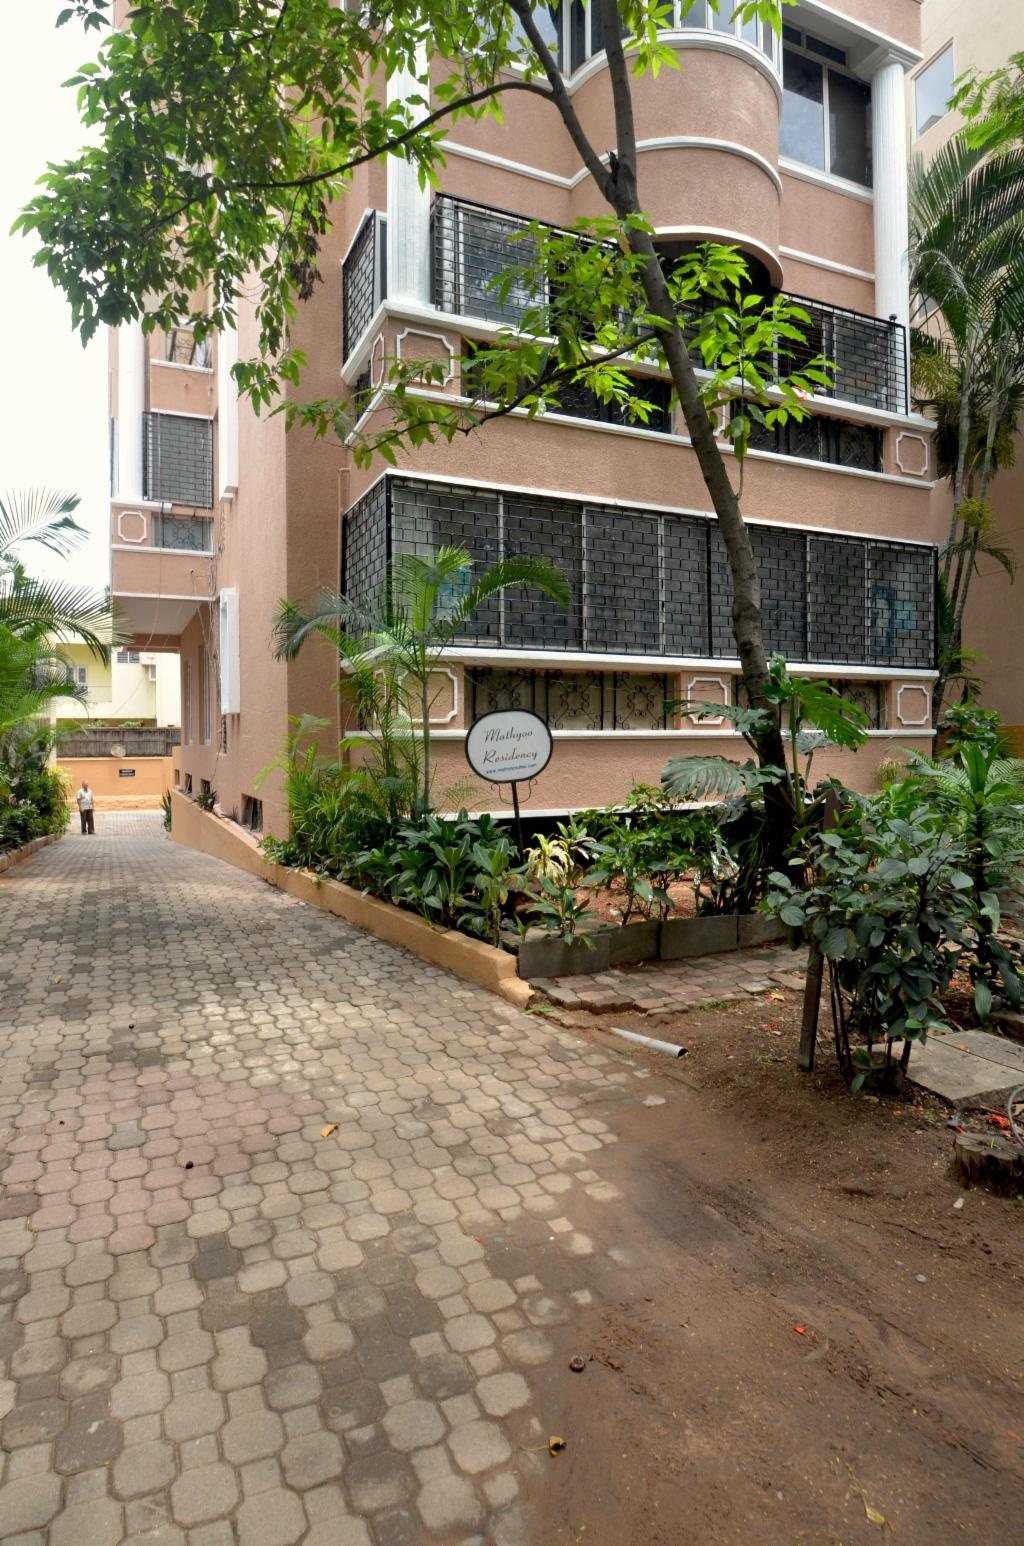 Living room |  Fully furnished Service apartments in Langford Town, Bangalore